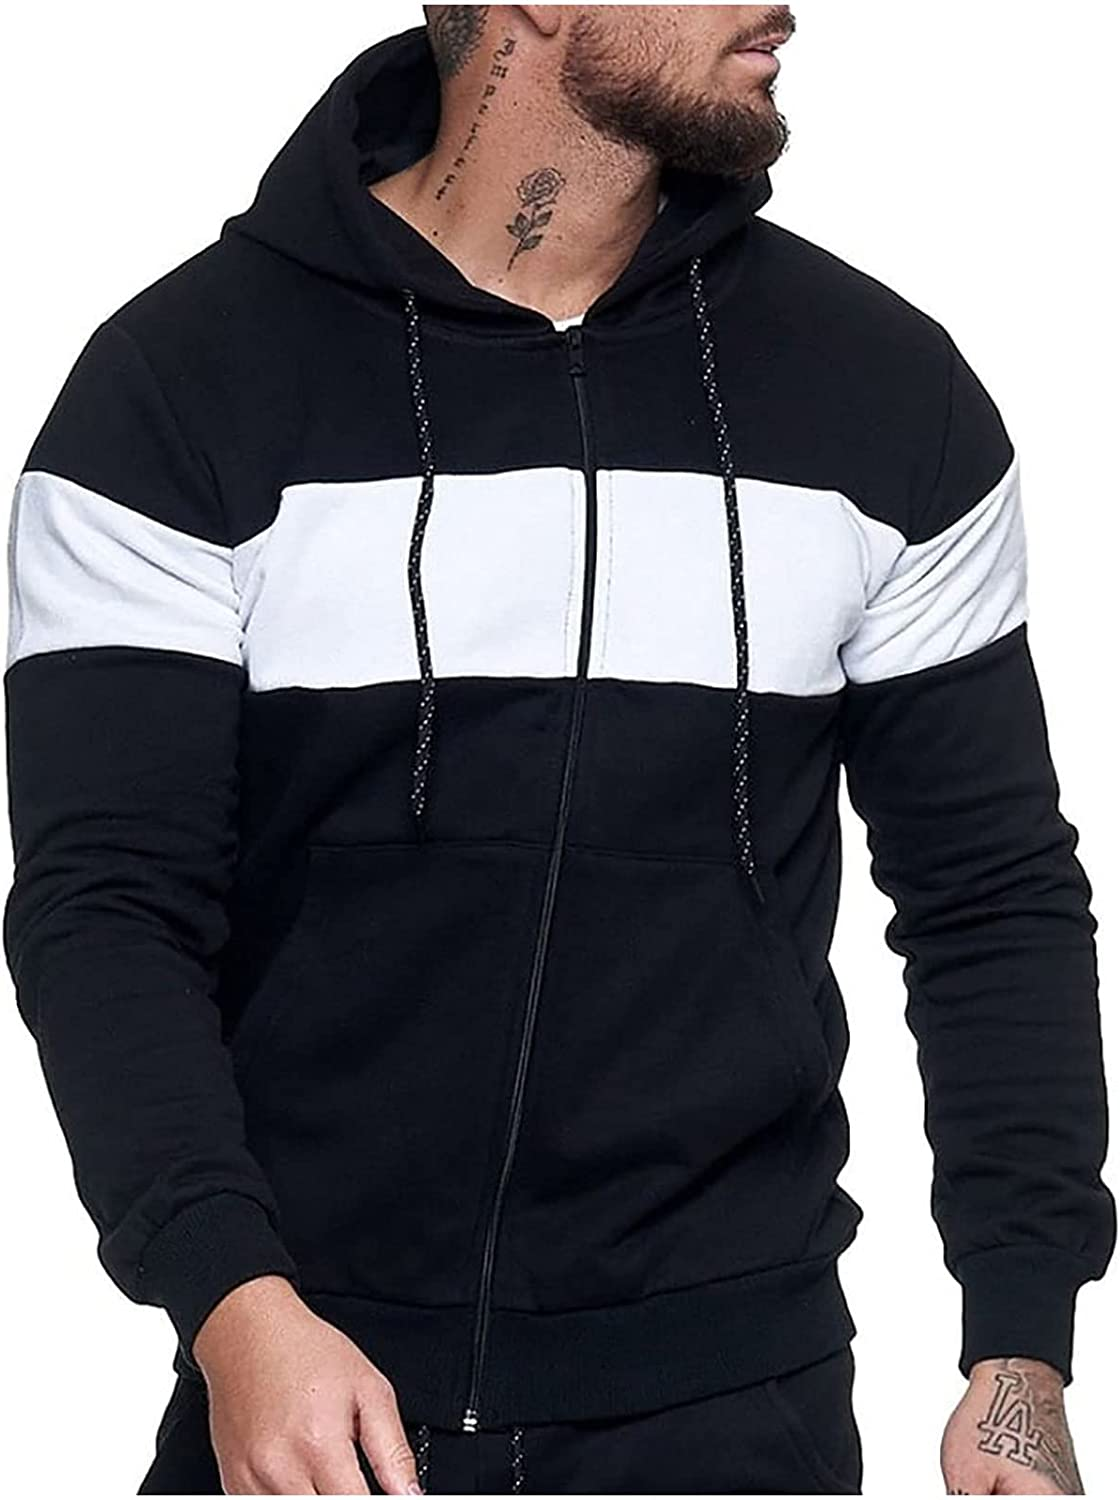 Men's Long Sleeve Sweater Color Block Splicing Drawstring Full Zipper Hooded Sports Tops Fashion Casual Blouse